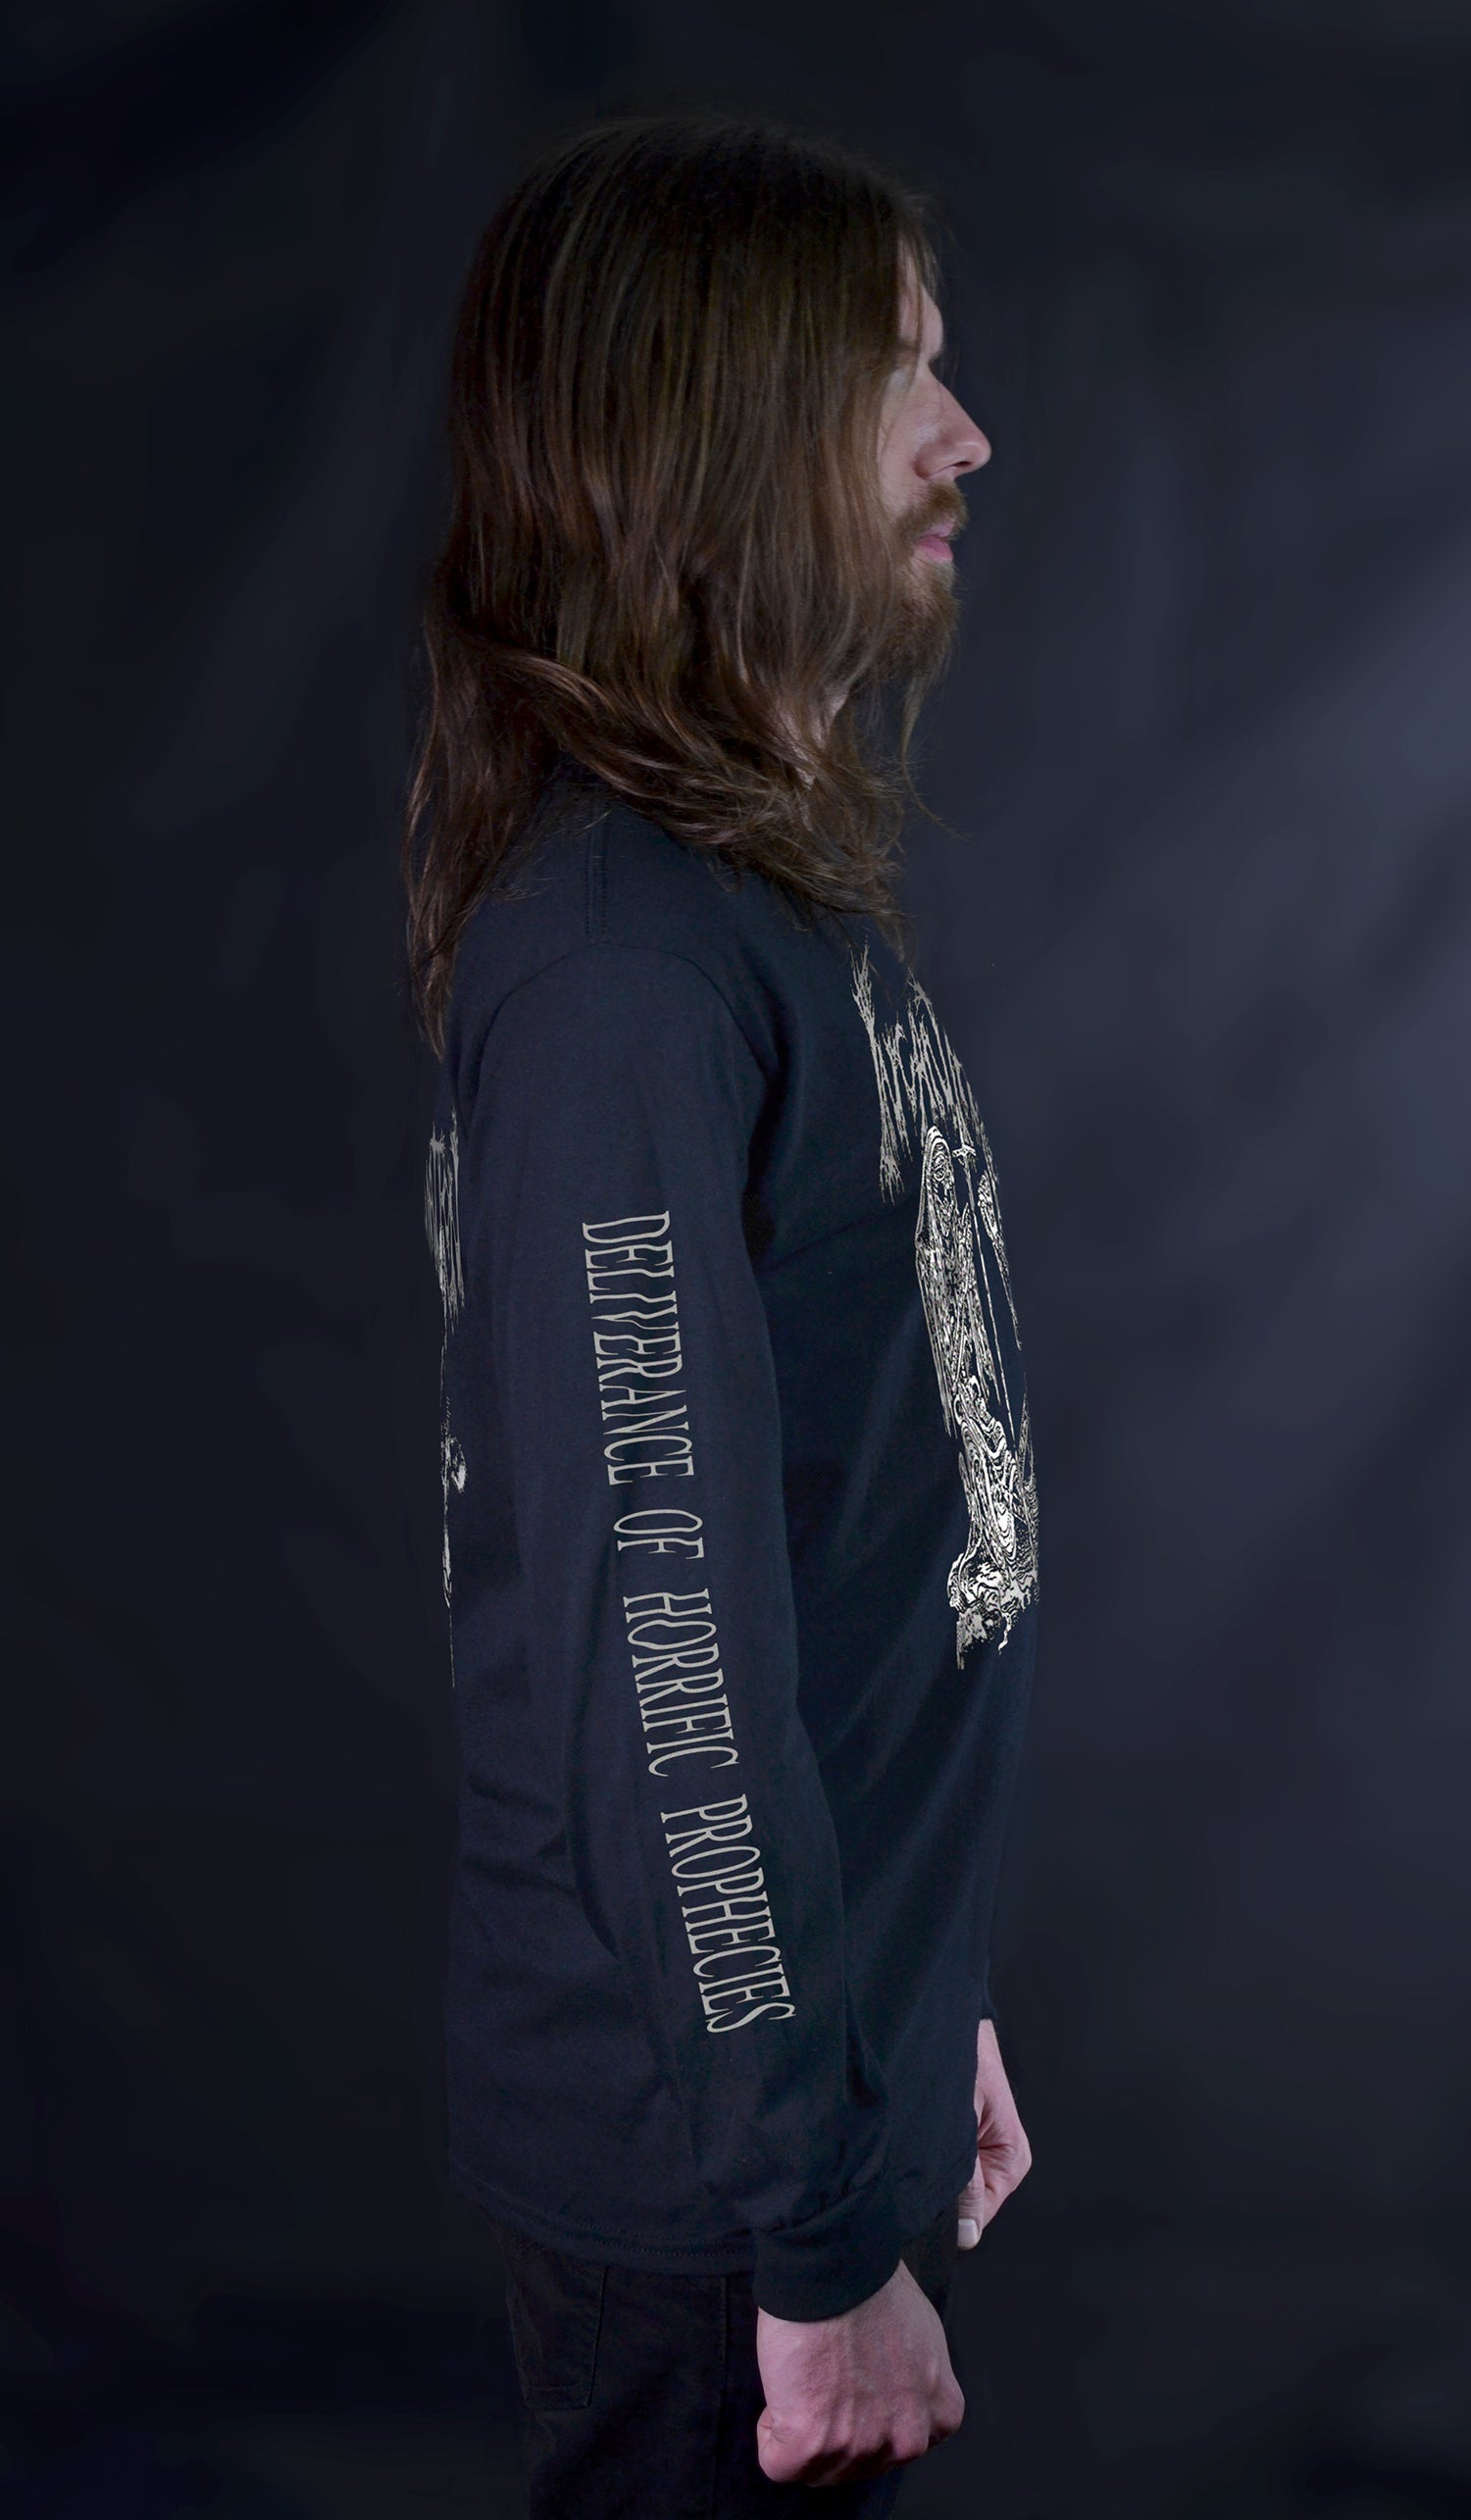 INCANTATION - Deliverance of Horrific Prophecies (LONG SLEEVE)